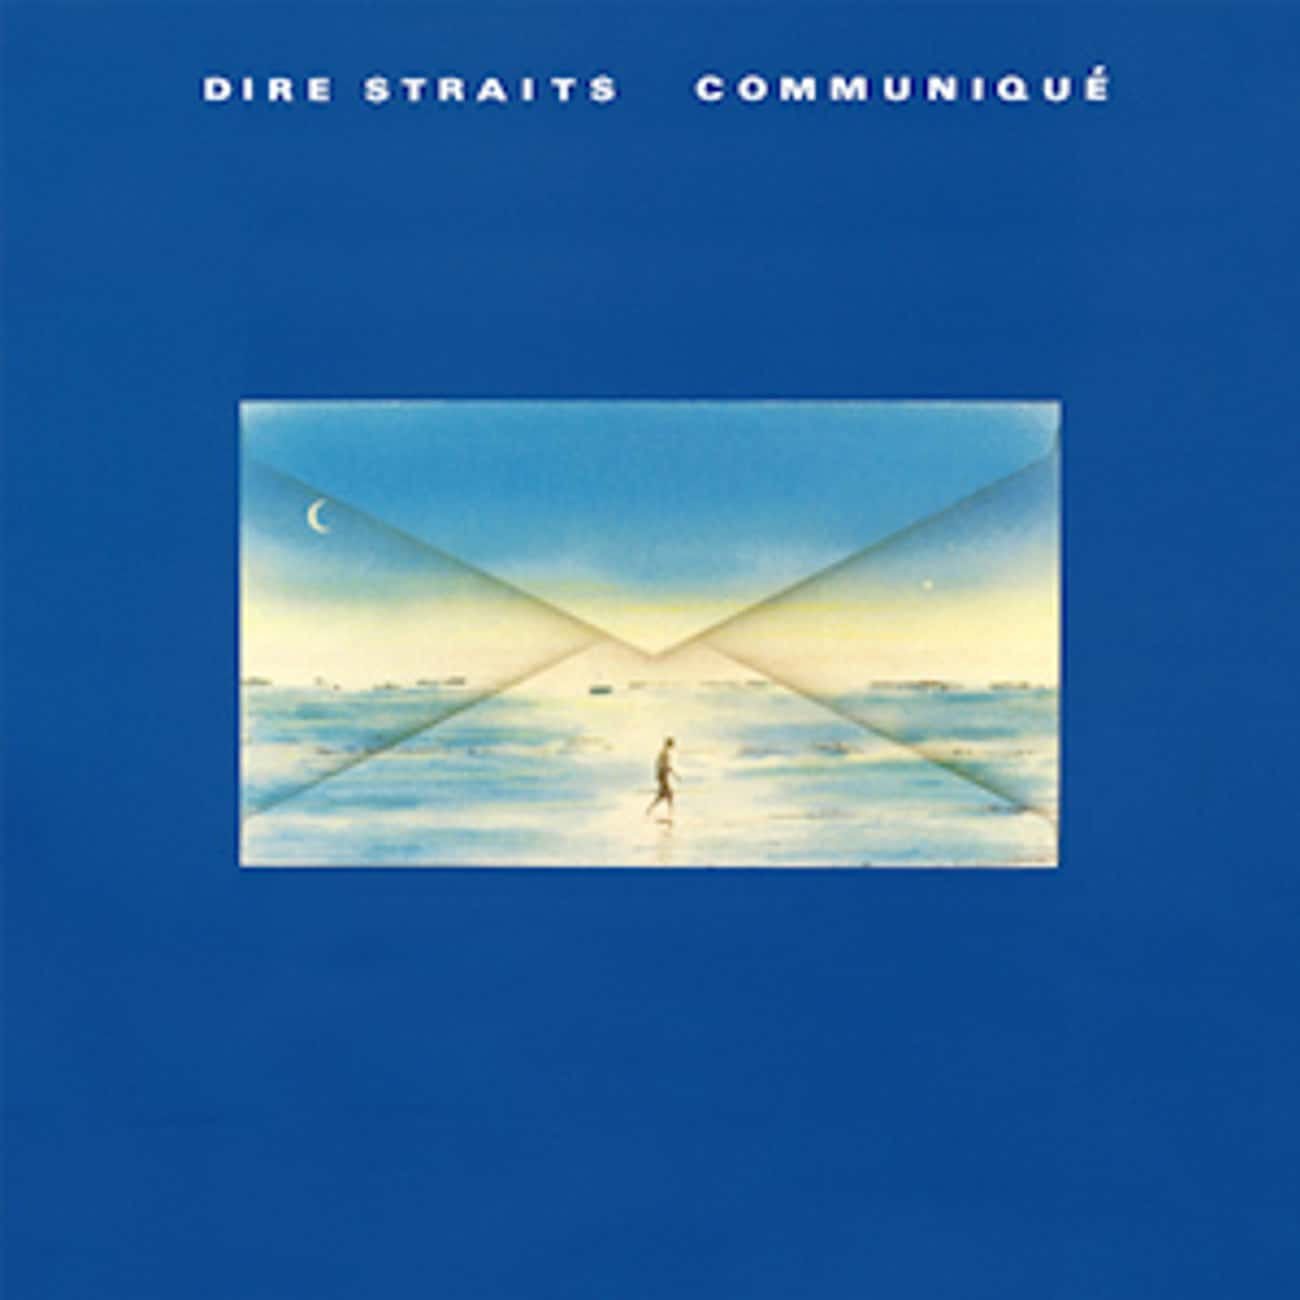 Communiqué is listed (or ranked) 4 on the list The Best Dire Straits Albums of All Time